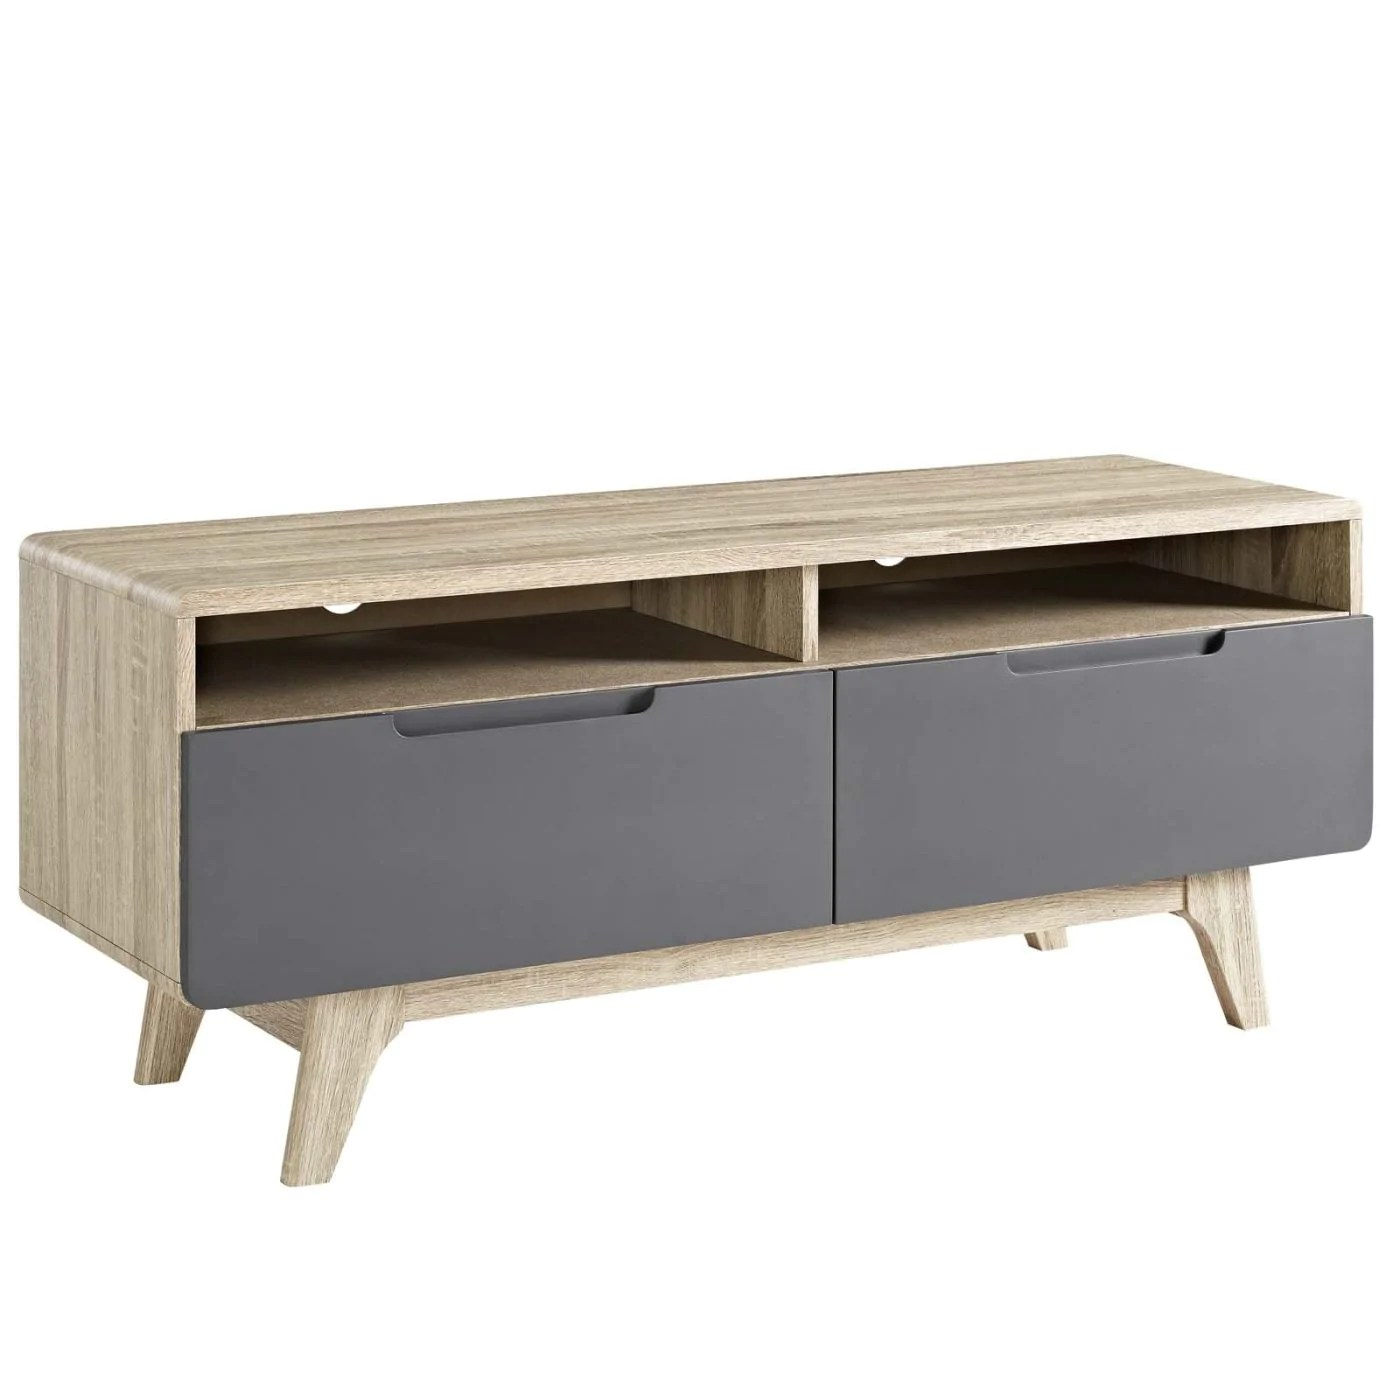 Tv Sideboard Modern Modway Entertainment Stands On Sale Eei 2533 Nat Gry Origin 47